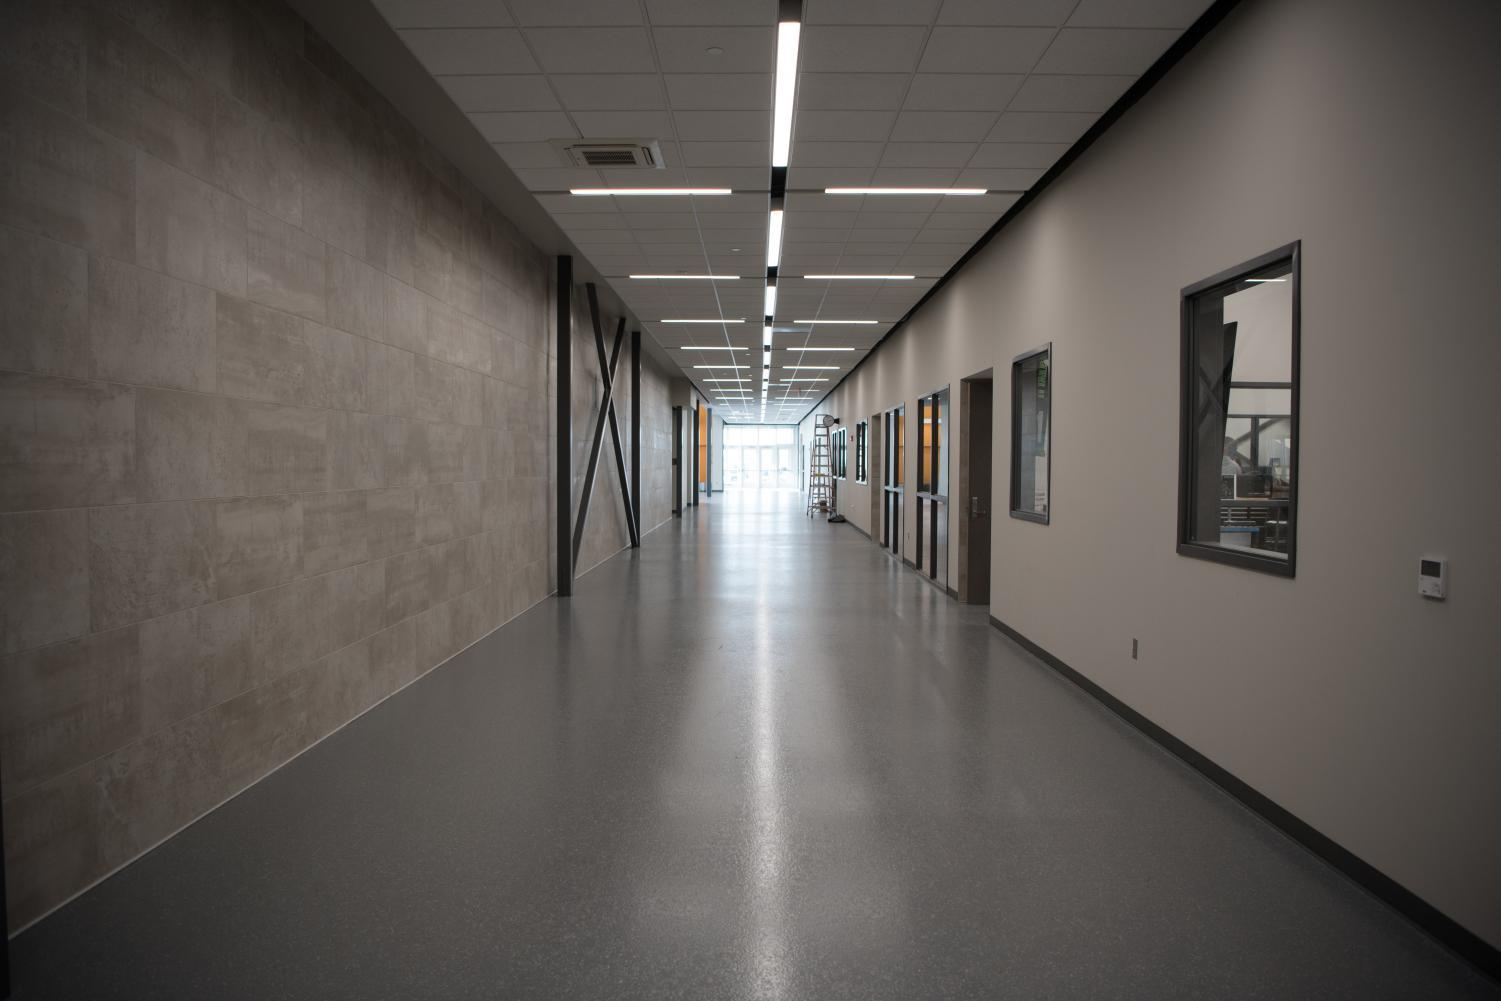 This+is+the+main+hallway+in+the+new+CTE+building%2C+where+most+of+the+classes+branch+off+from.+The+CTE+building+opened+on+January+fourth+but+is+still+under+construction.